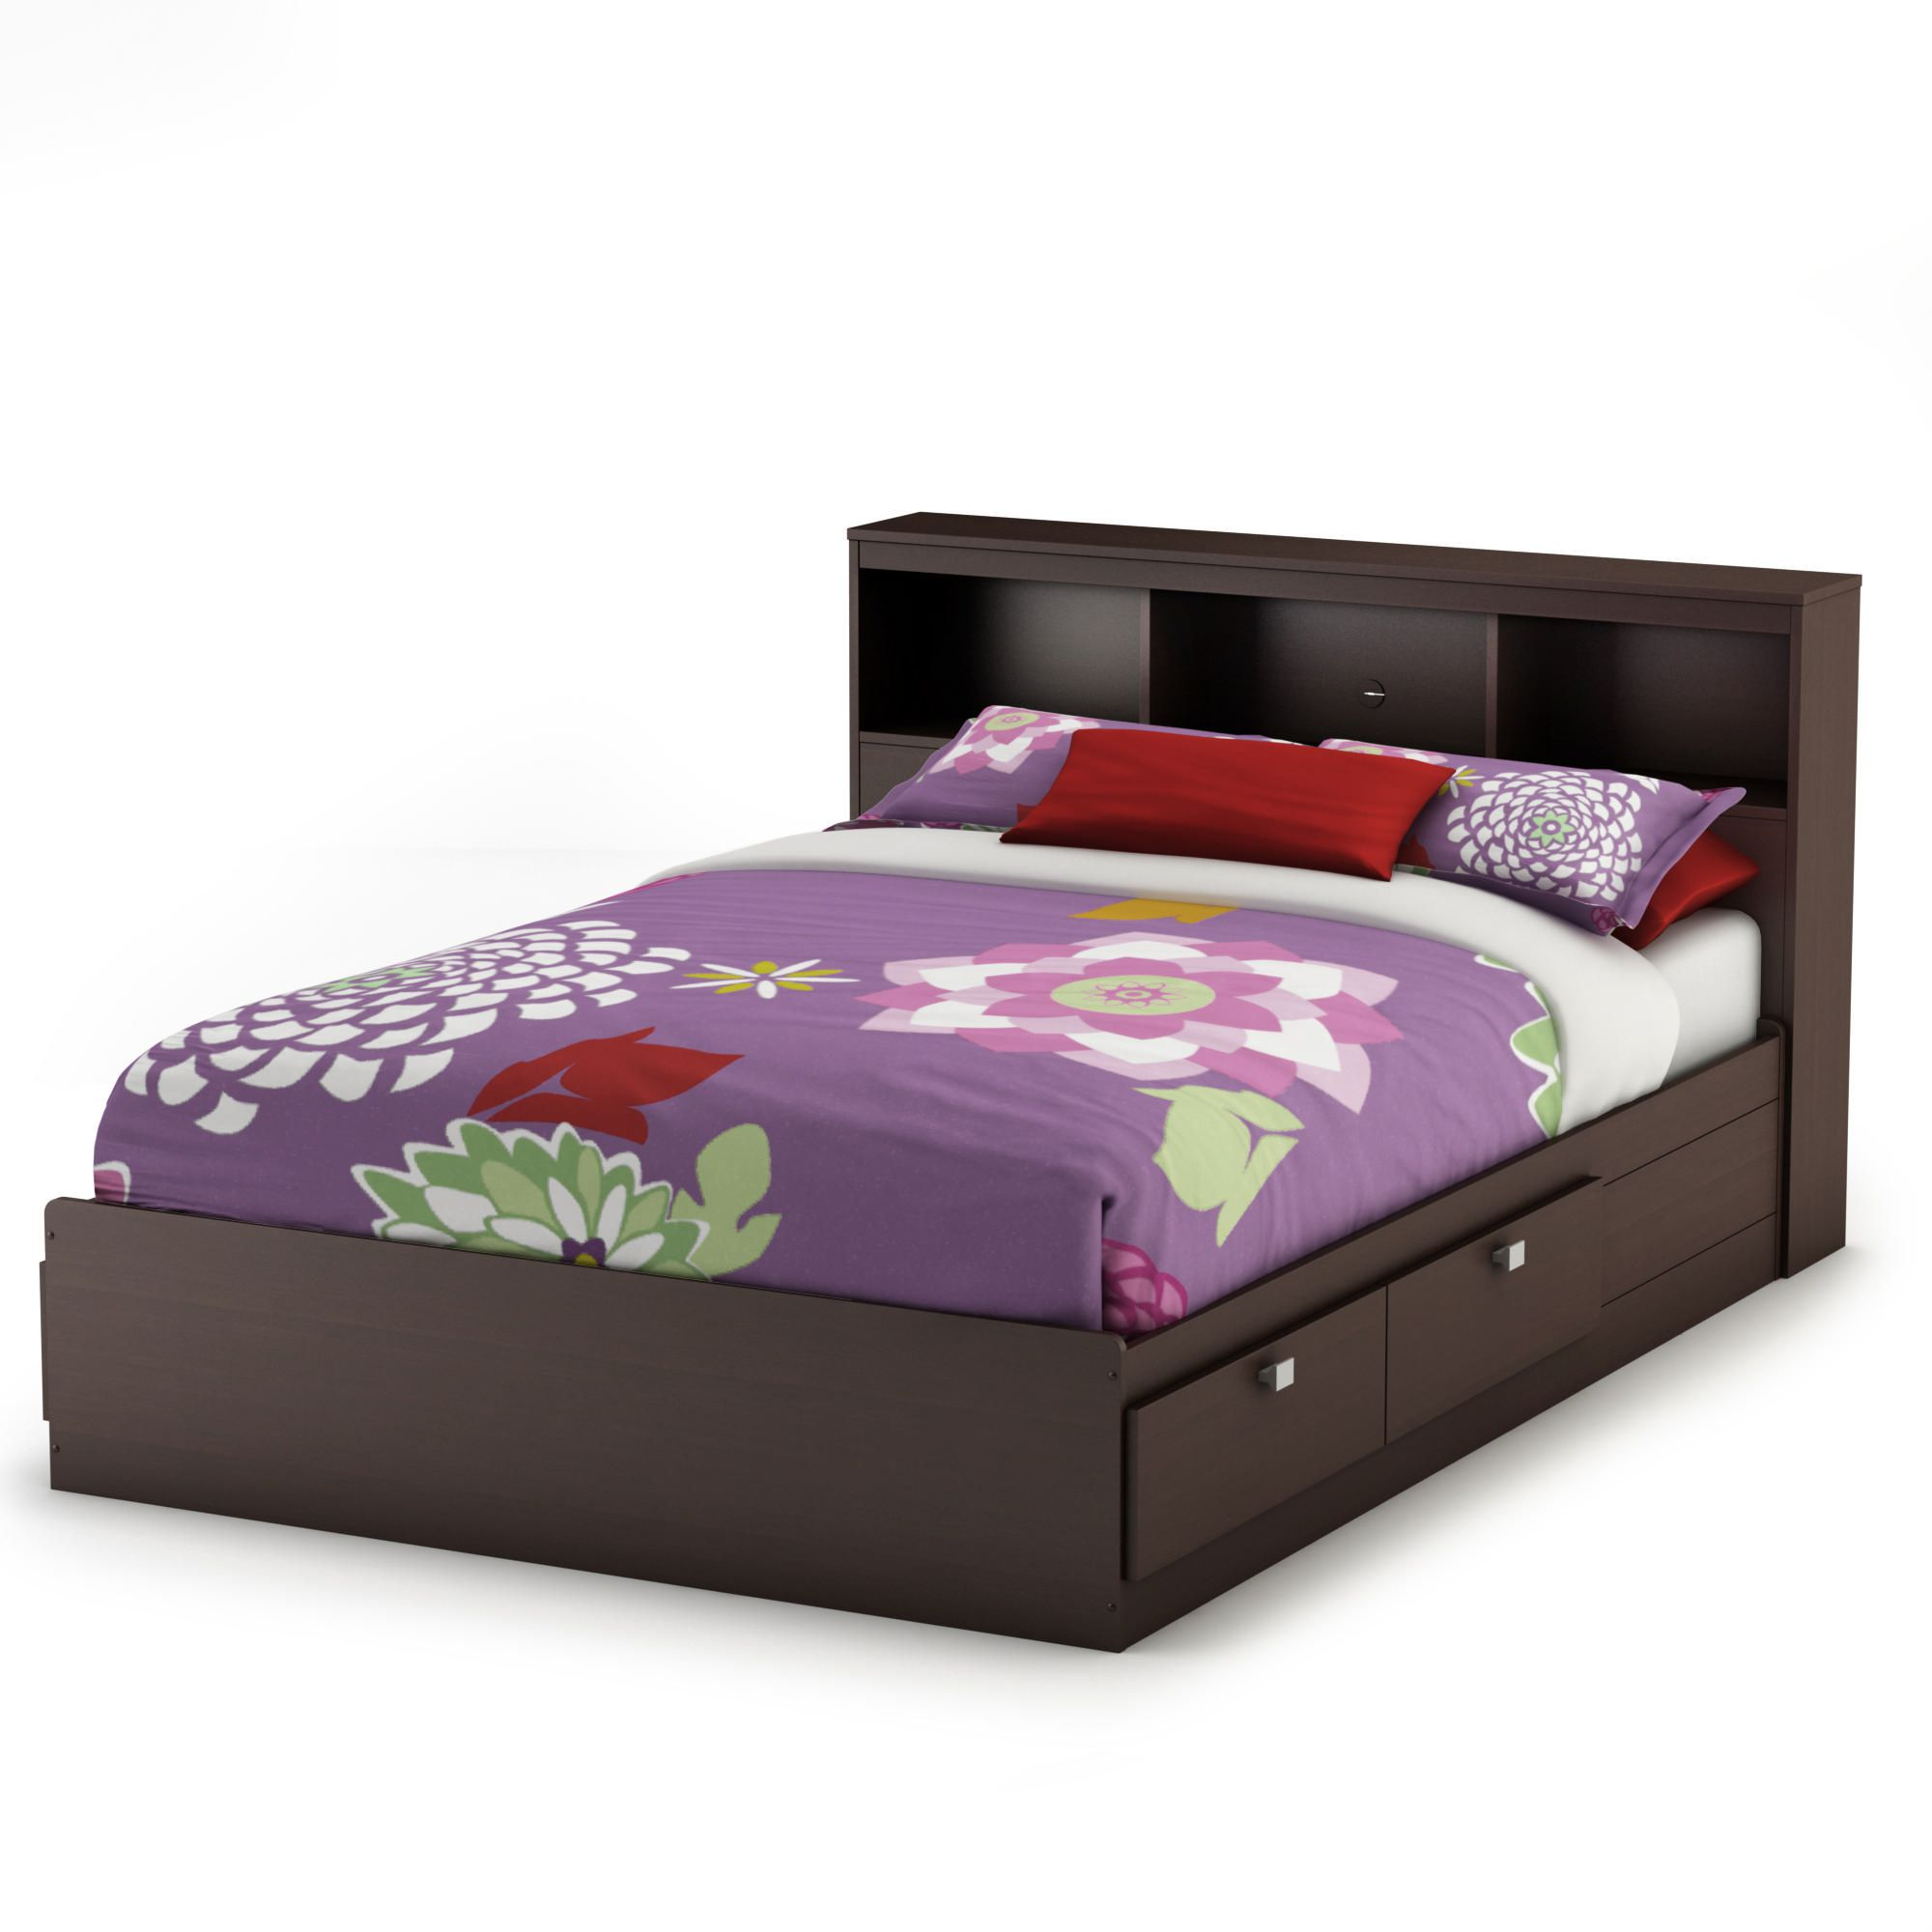 south shore spark collection full mates bed  walmartca -